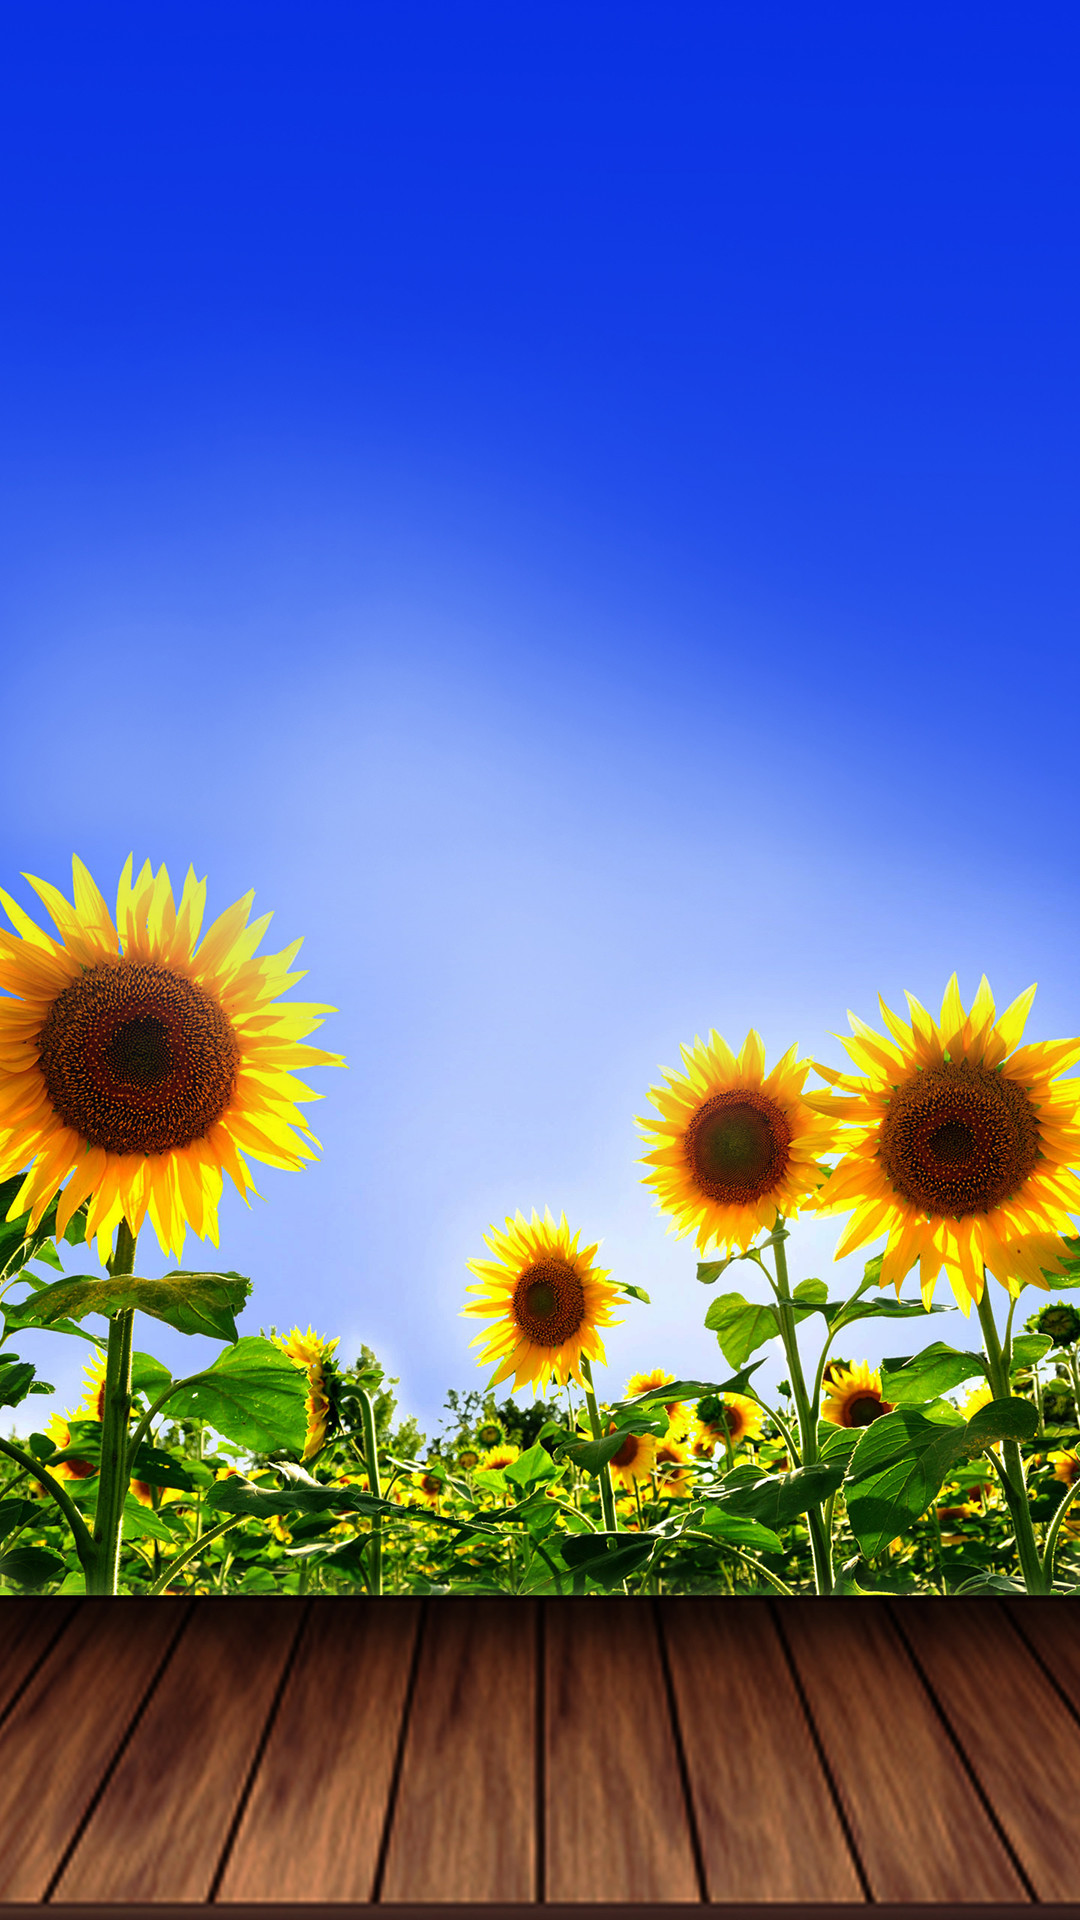 2560x1440 HD Wallpaper With Sunflower In A Field